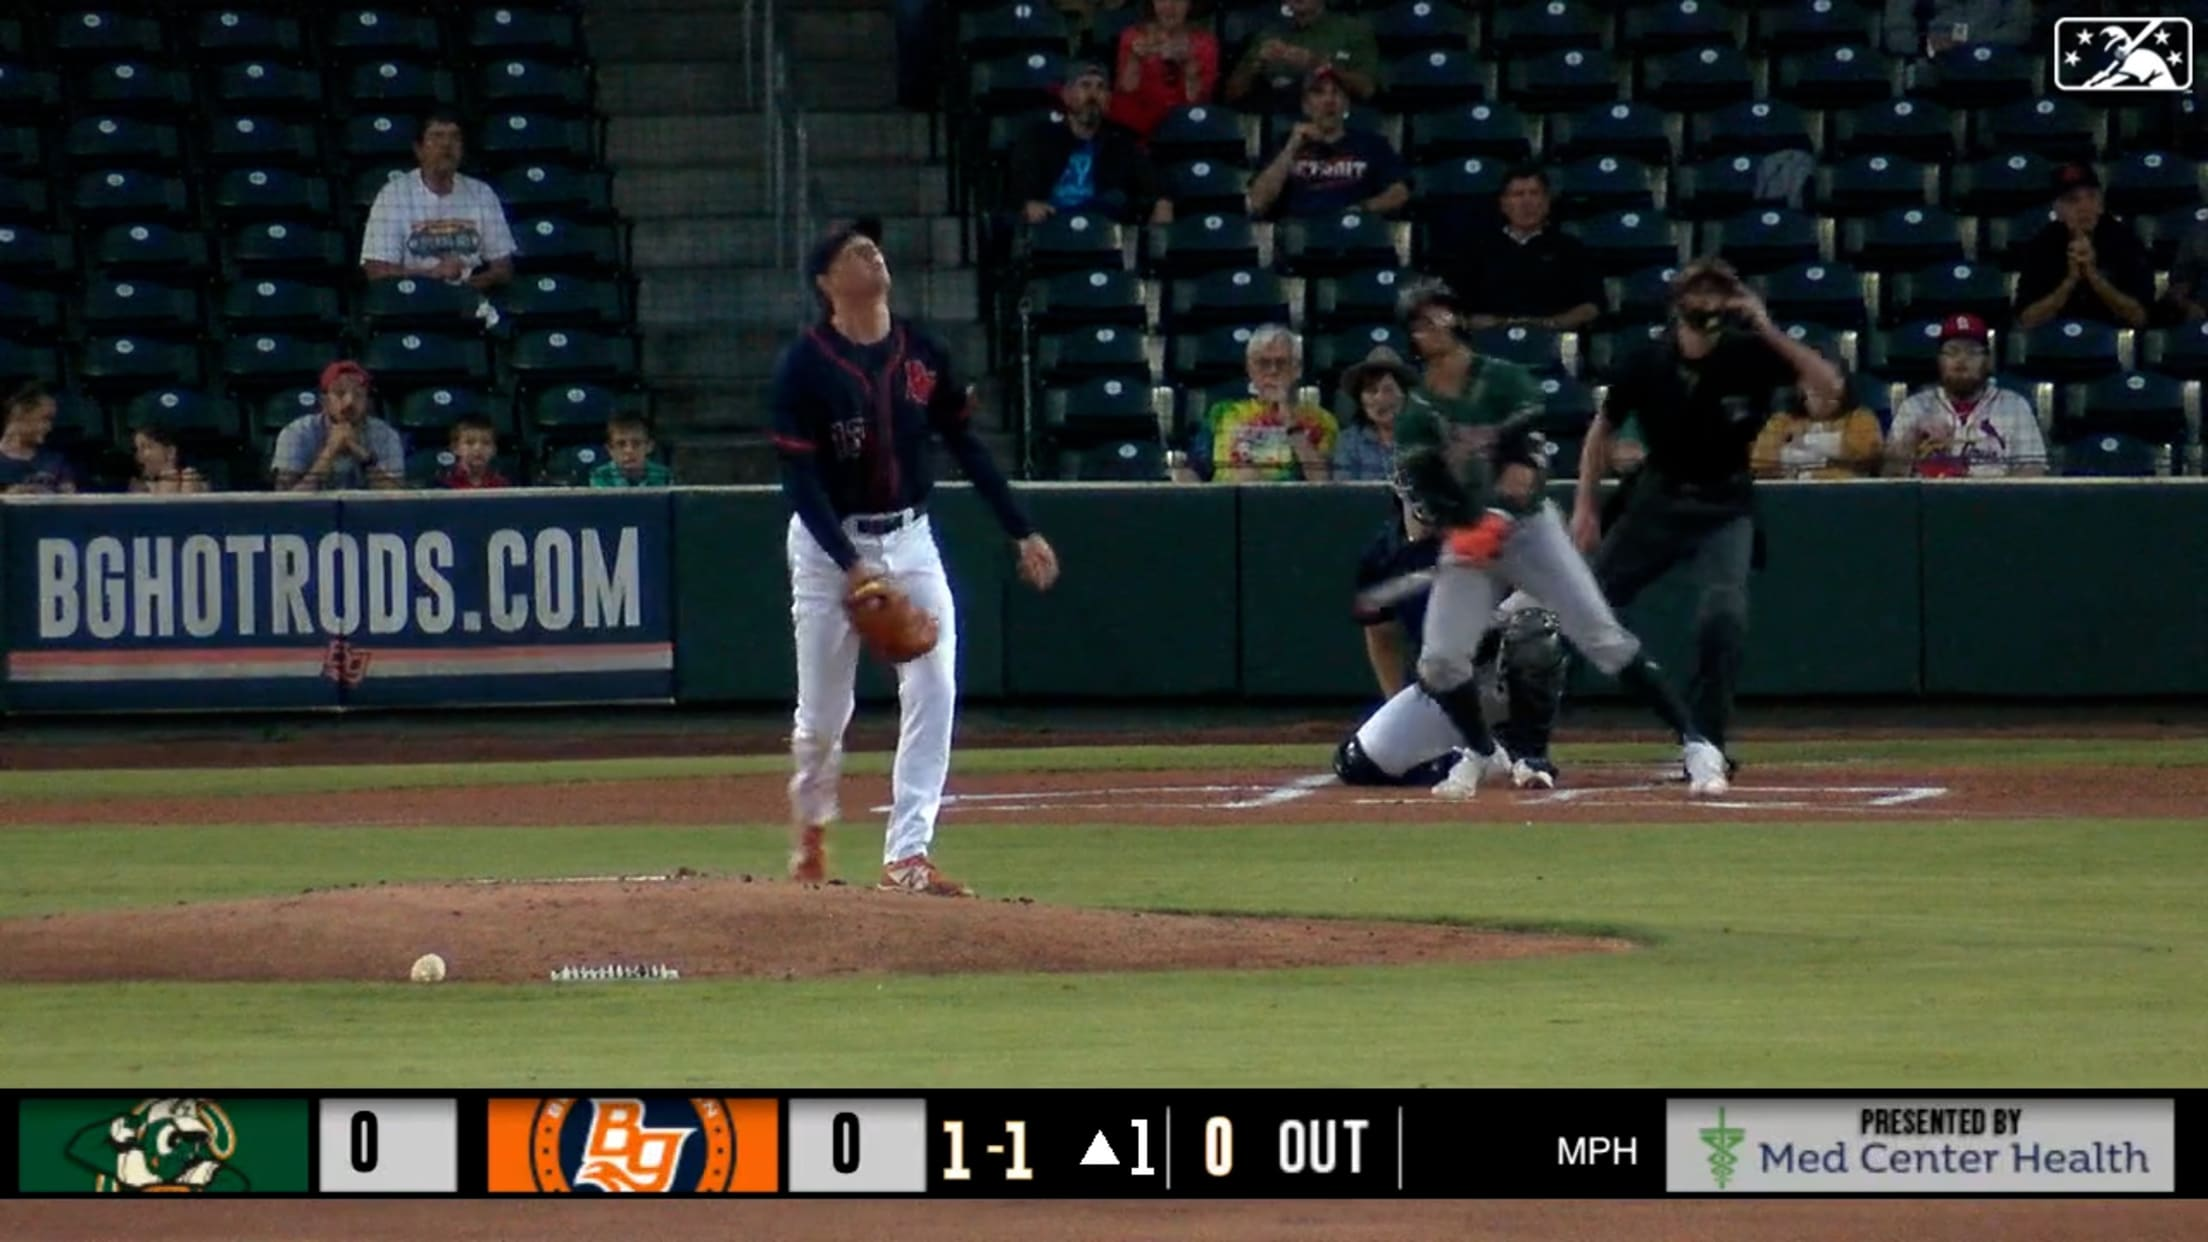 Gonzales launches a two-run homer